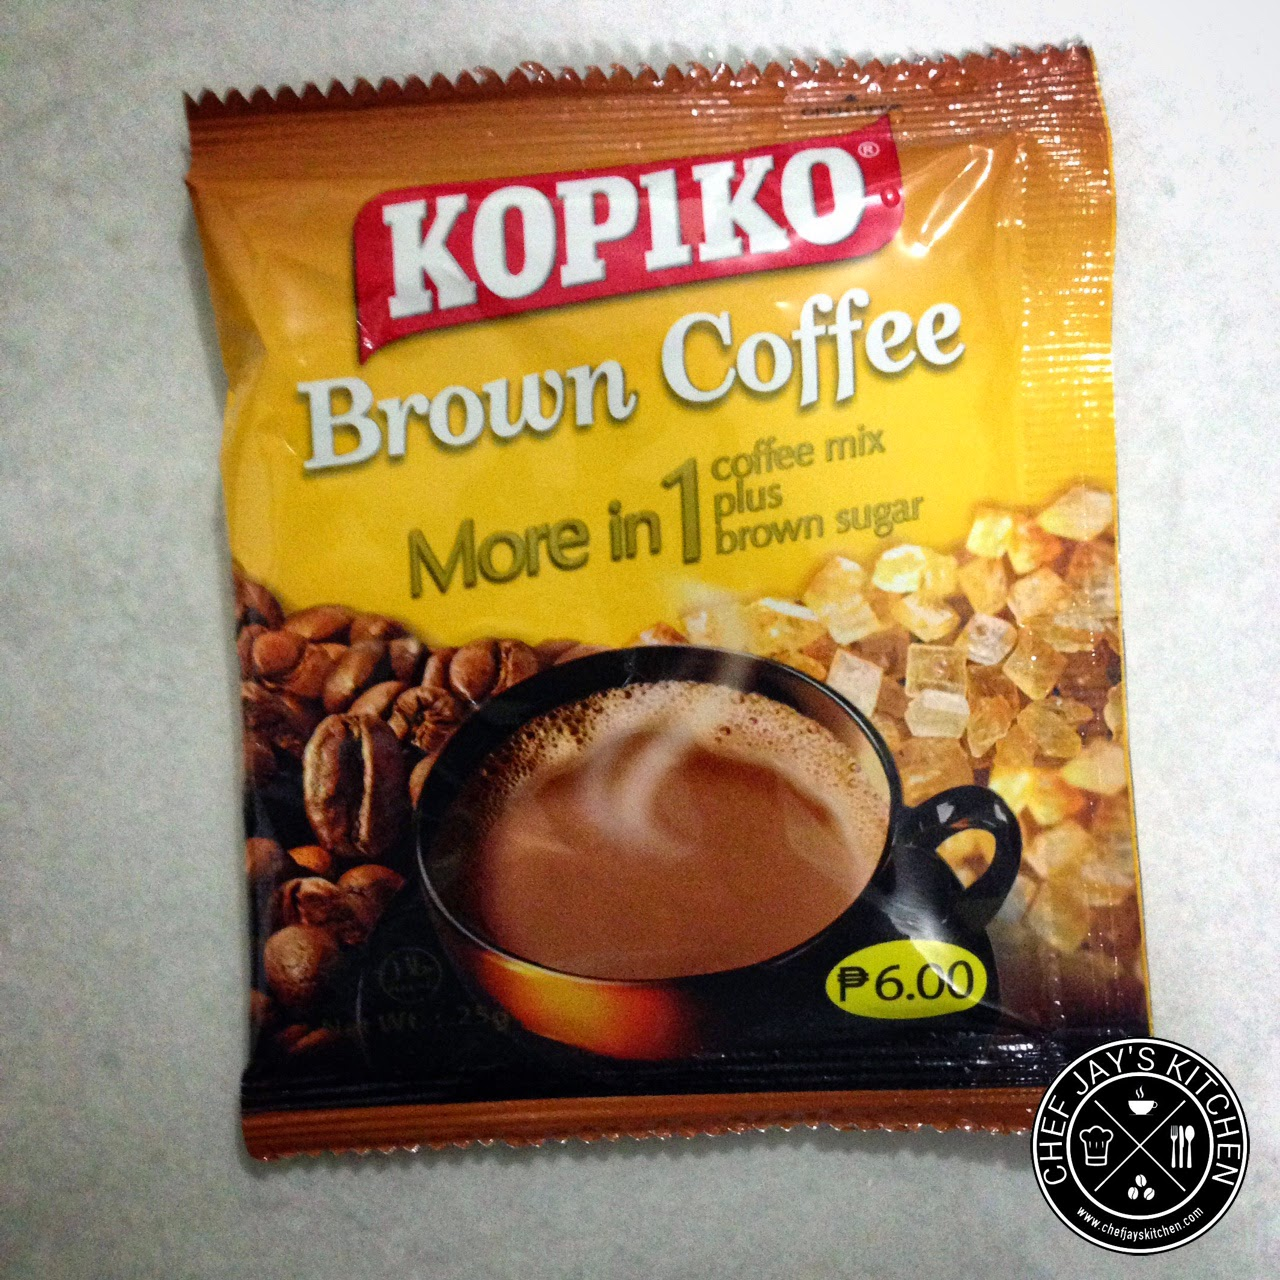 Brown Coffee Brands in the Philippines Review - Kopiko Brown